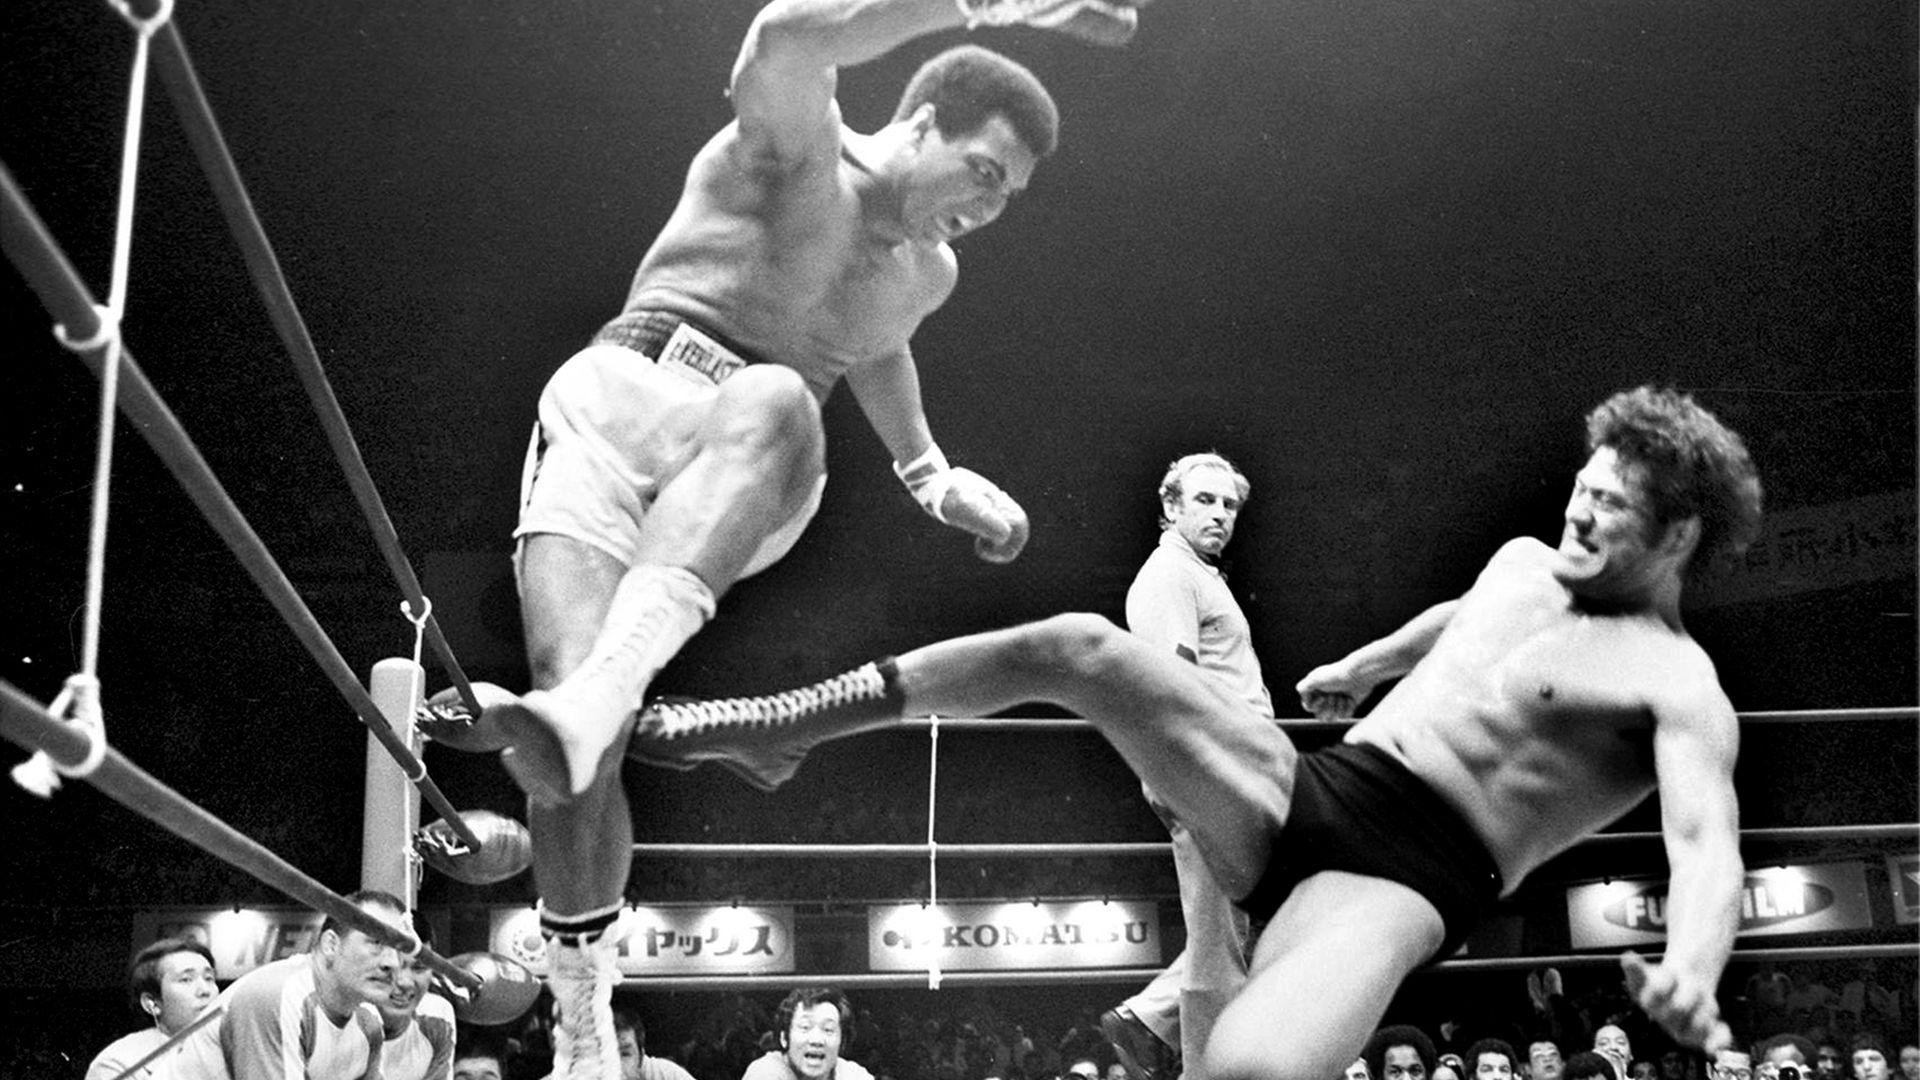 Muhammad Ali takes evasive action from a kick from Antonio Inoki during their bizarre 1976 clash - Credit: Getty Images